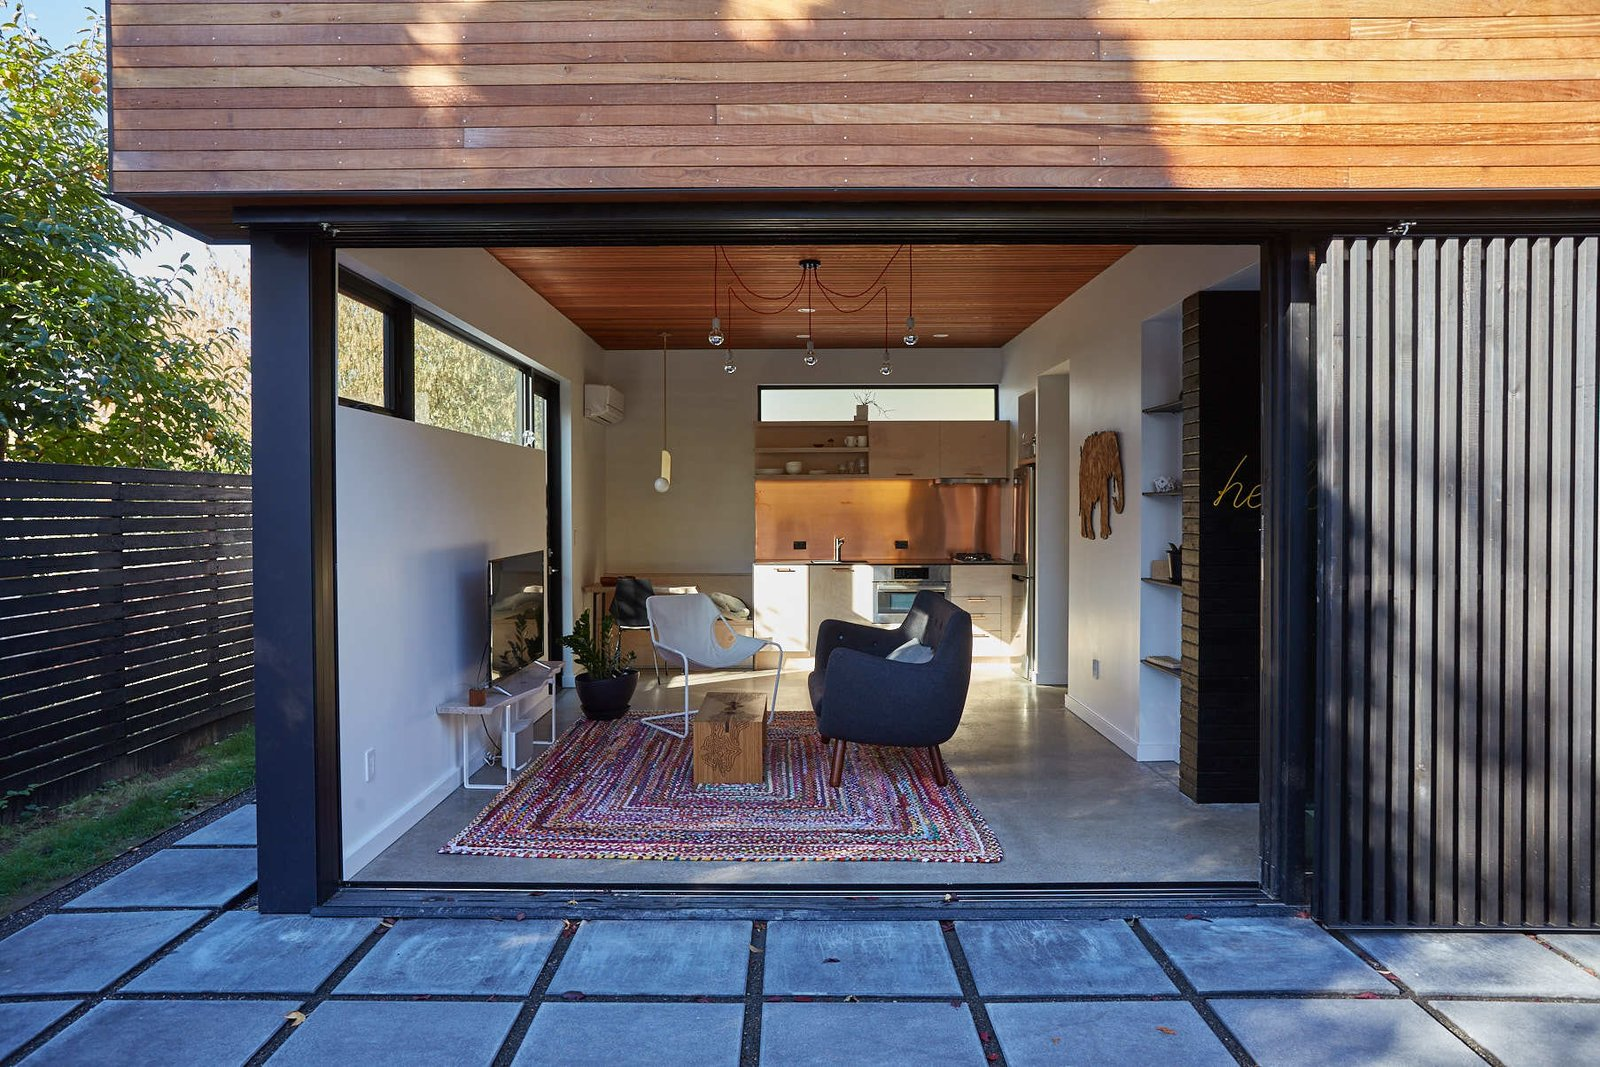 Outdoor Having the inside open to a patio makes it feel much larger  The Mansfield Frogner House